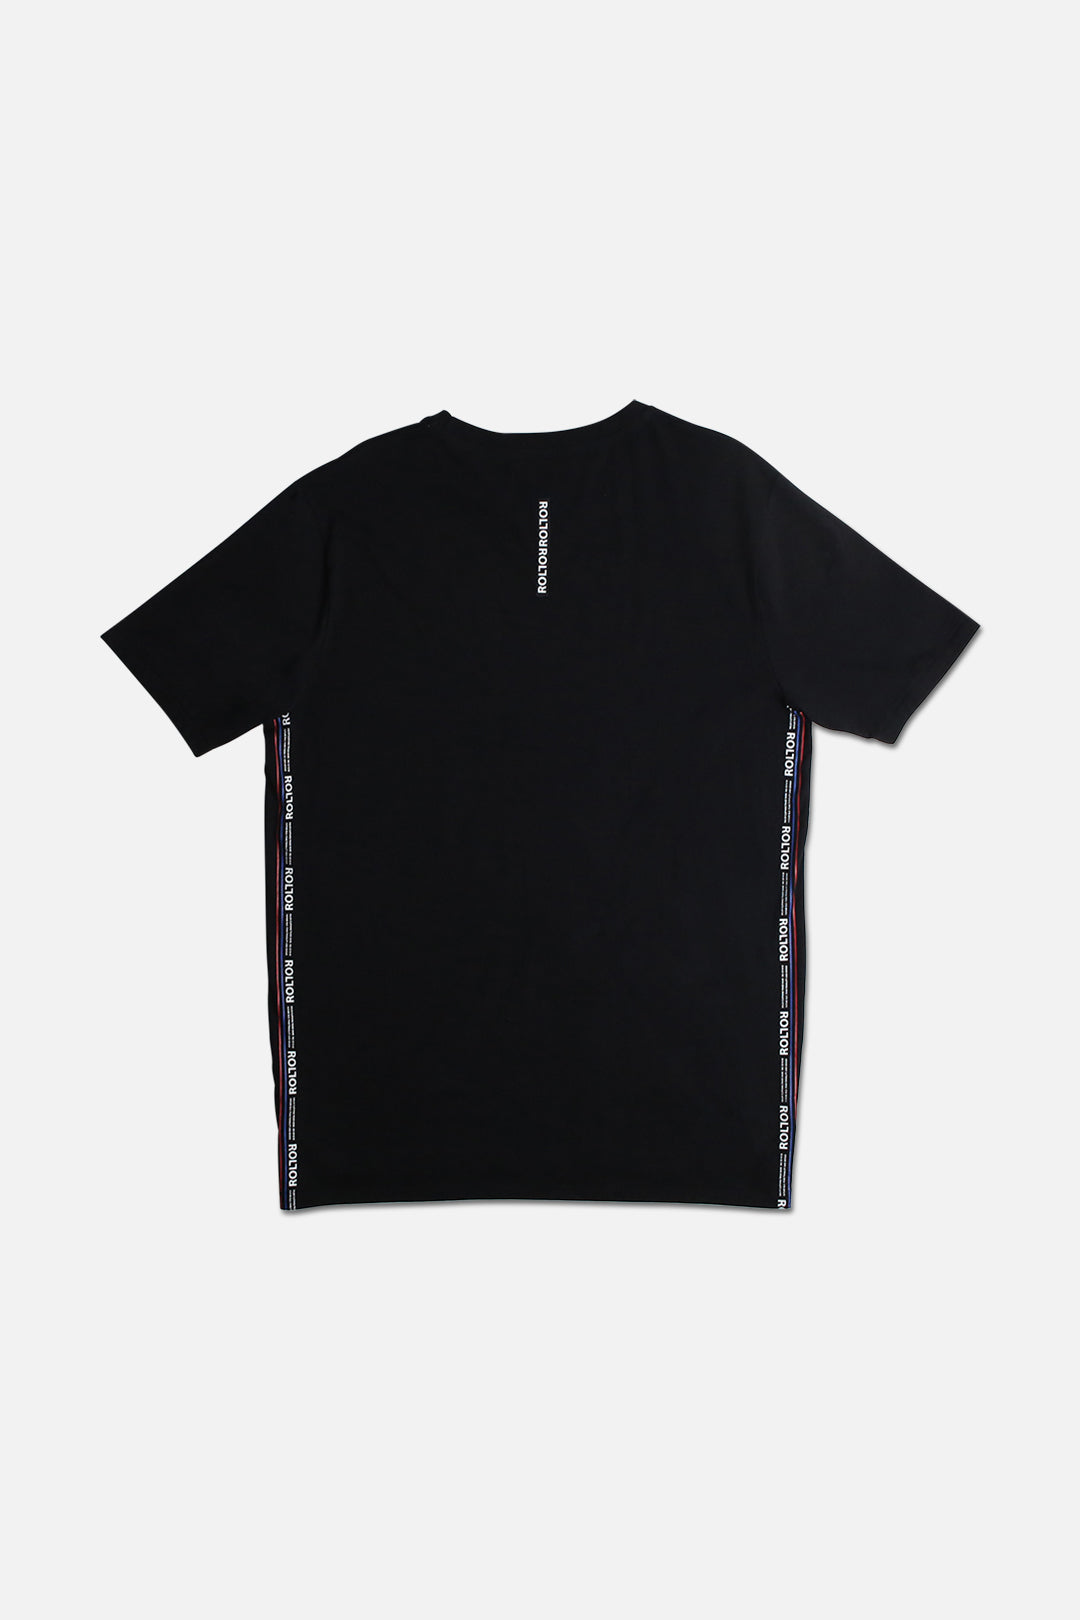 The Grantland Tee - Black - Roler Clothing